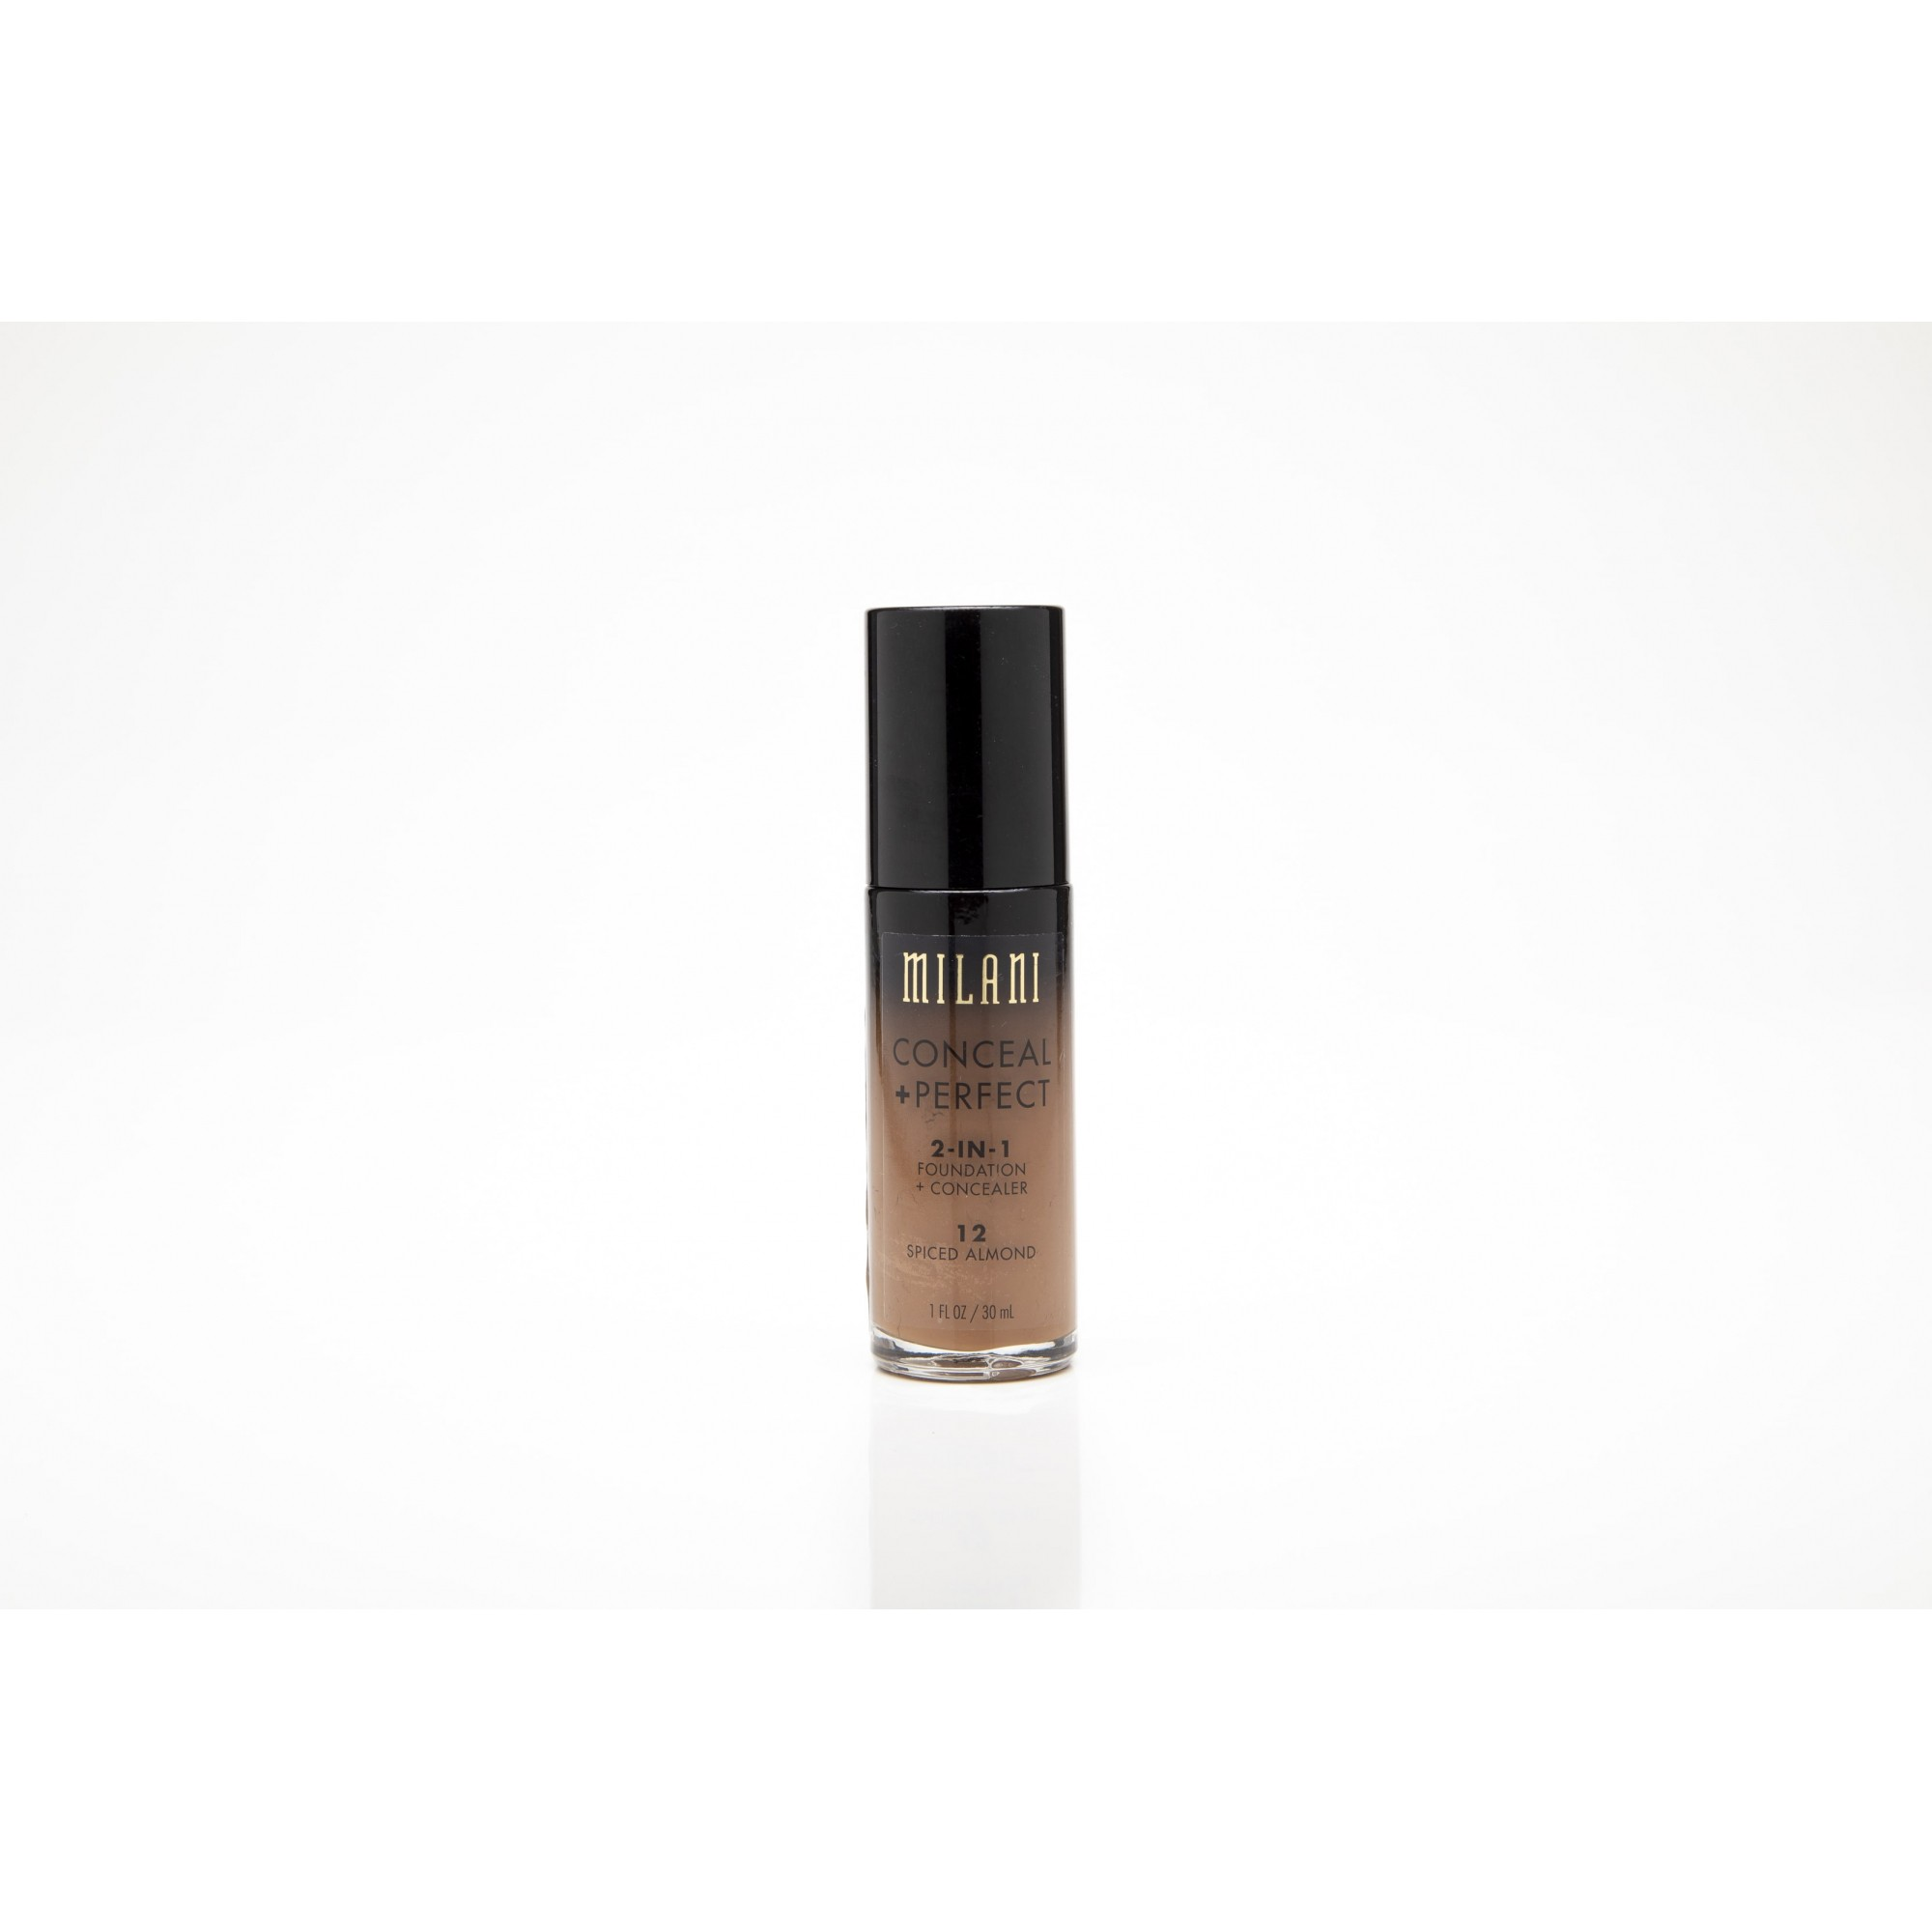 Base milani conceal + perfect 2-in-1 12 spiced almond